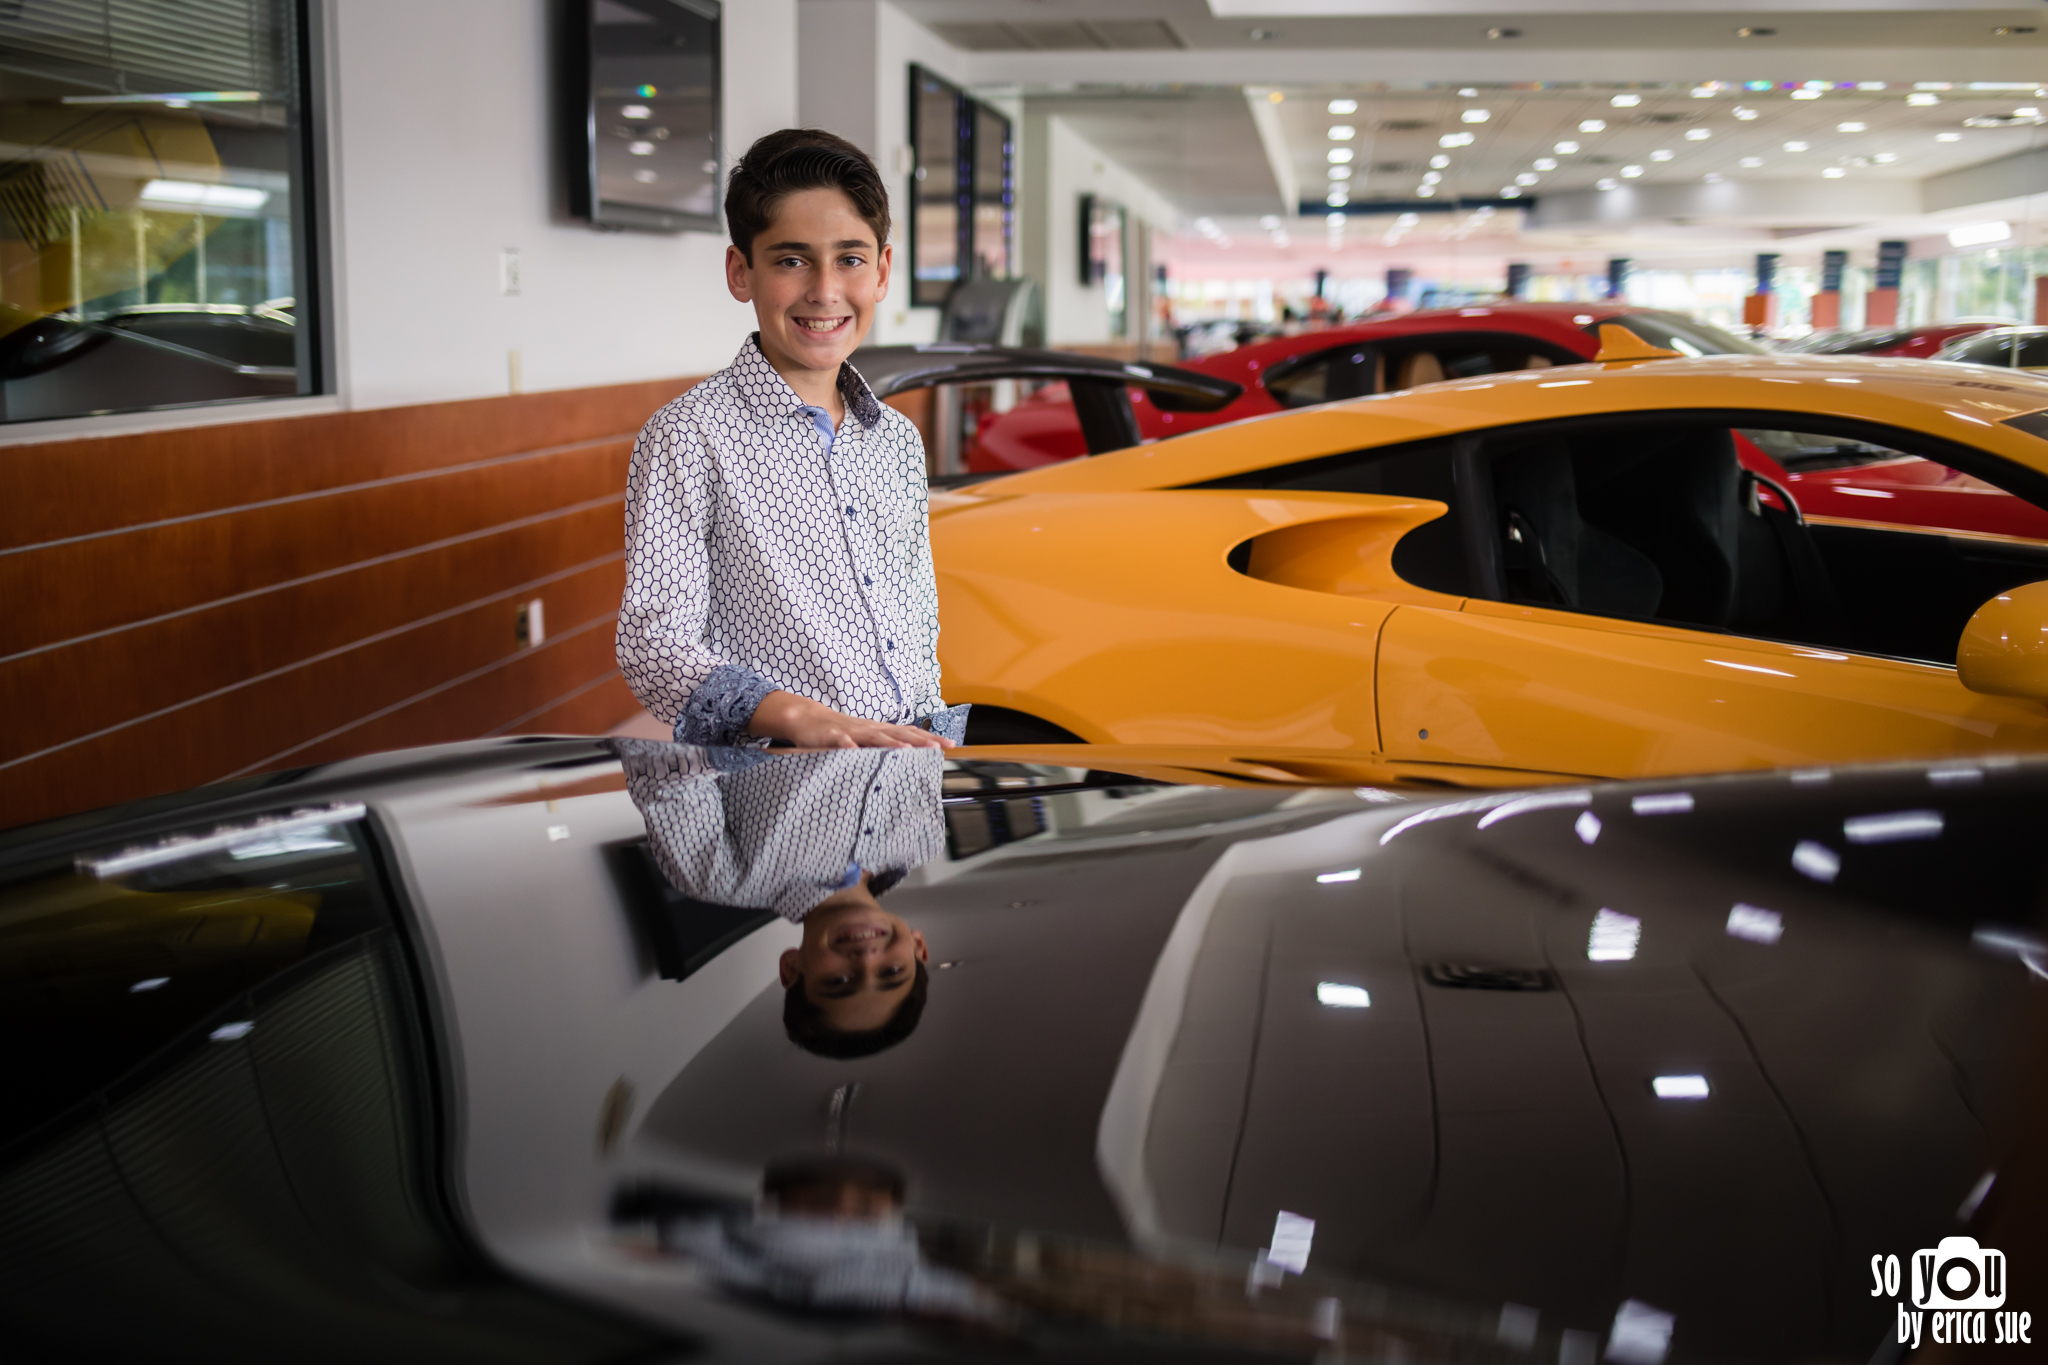 so-you-by-erica-sue-mitzvah-photographer-collection-luxury-car-ft-lauderdale-4983.jpg